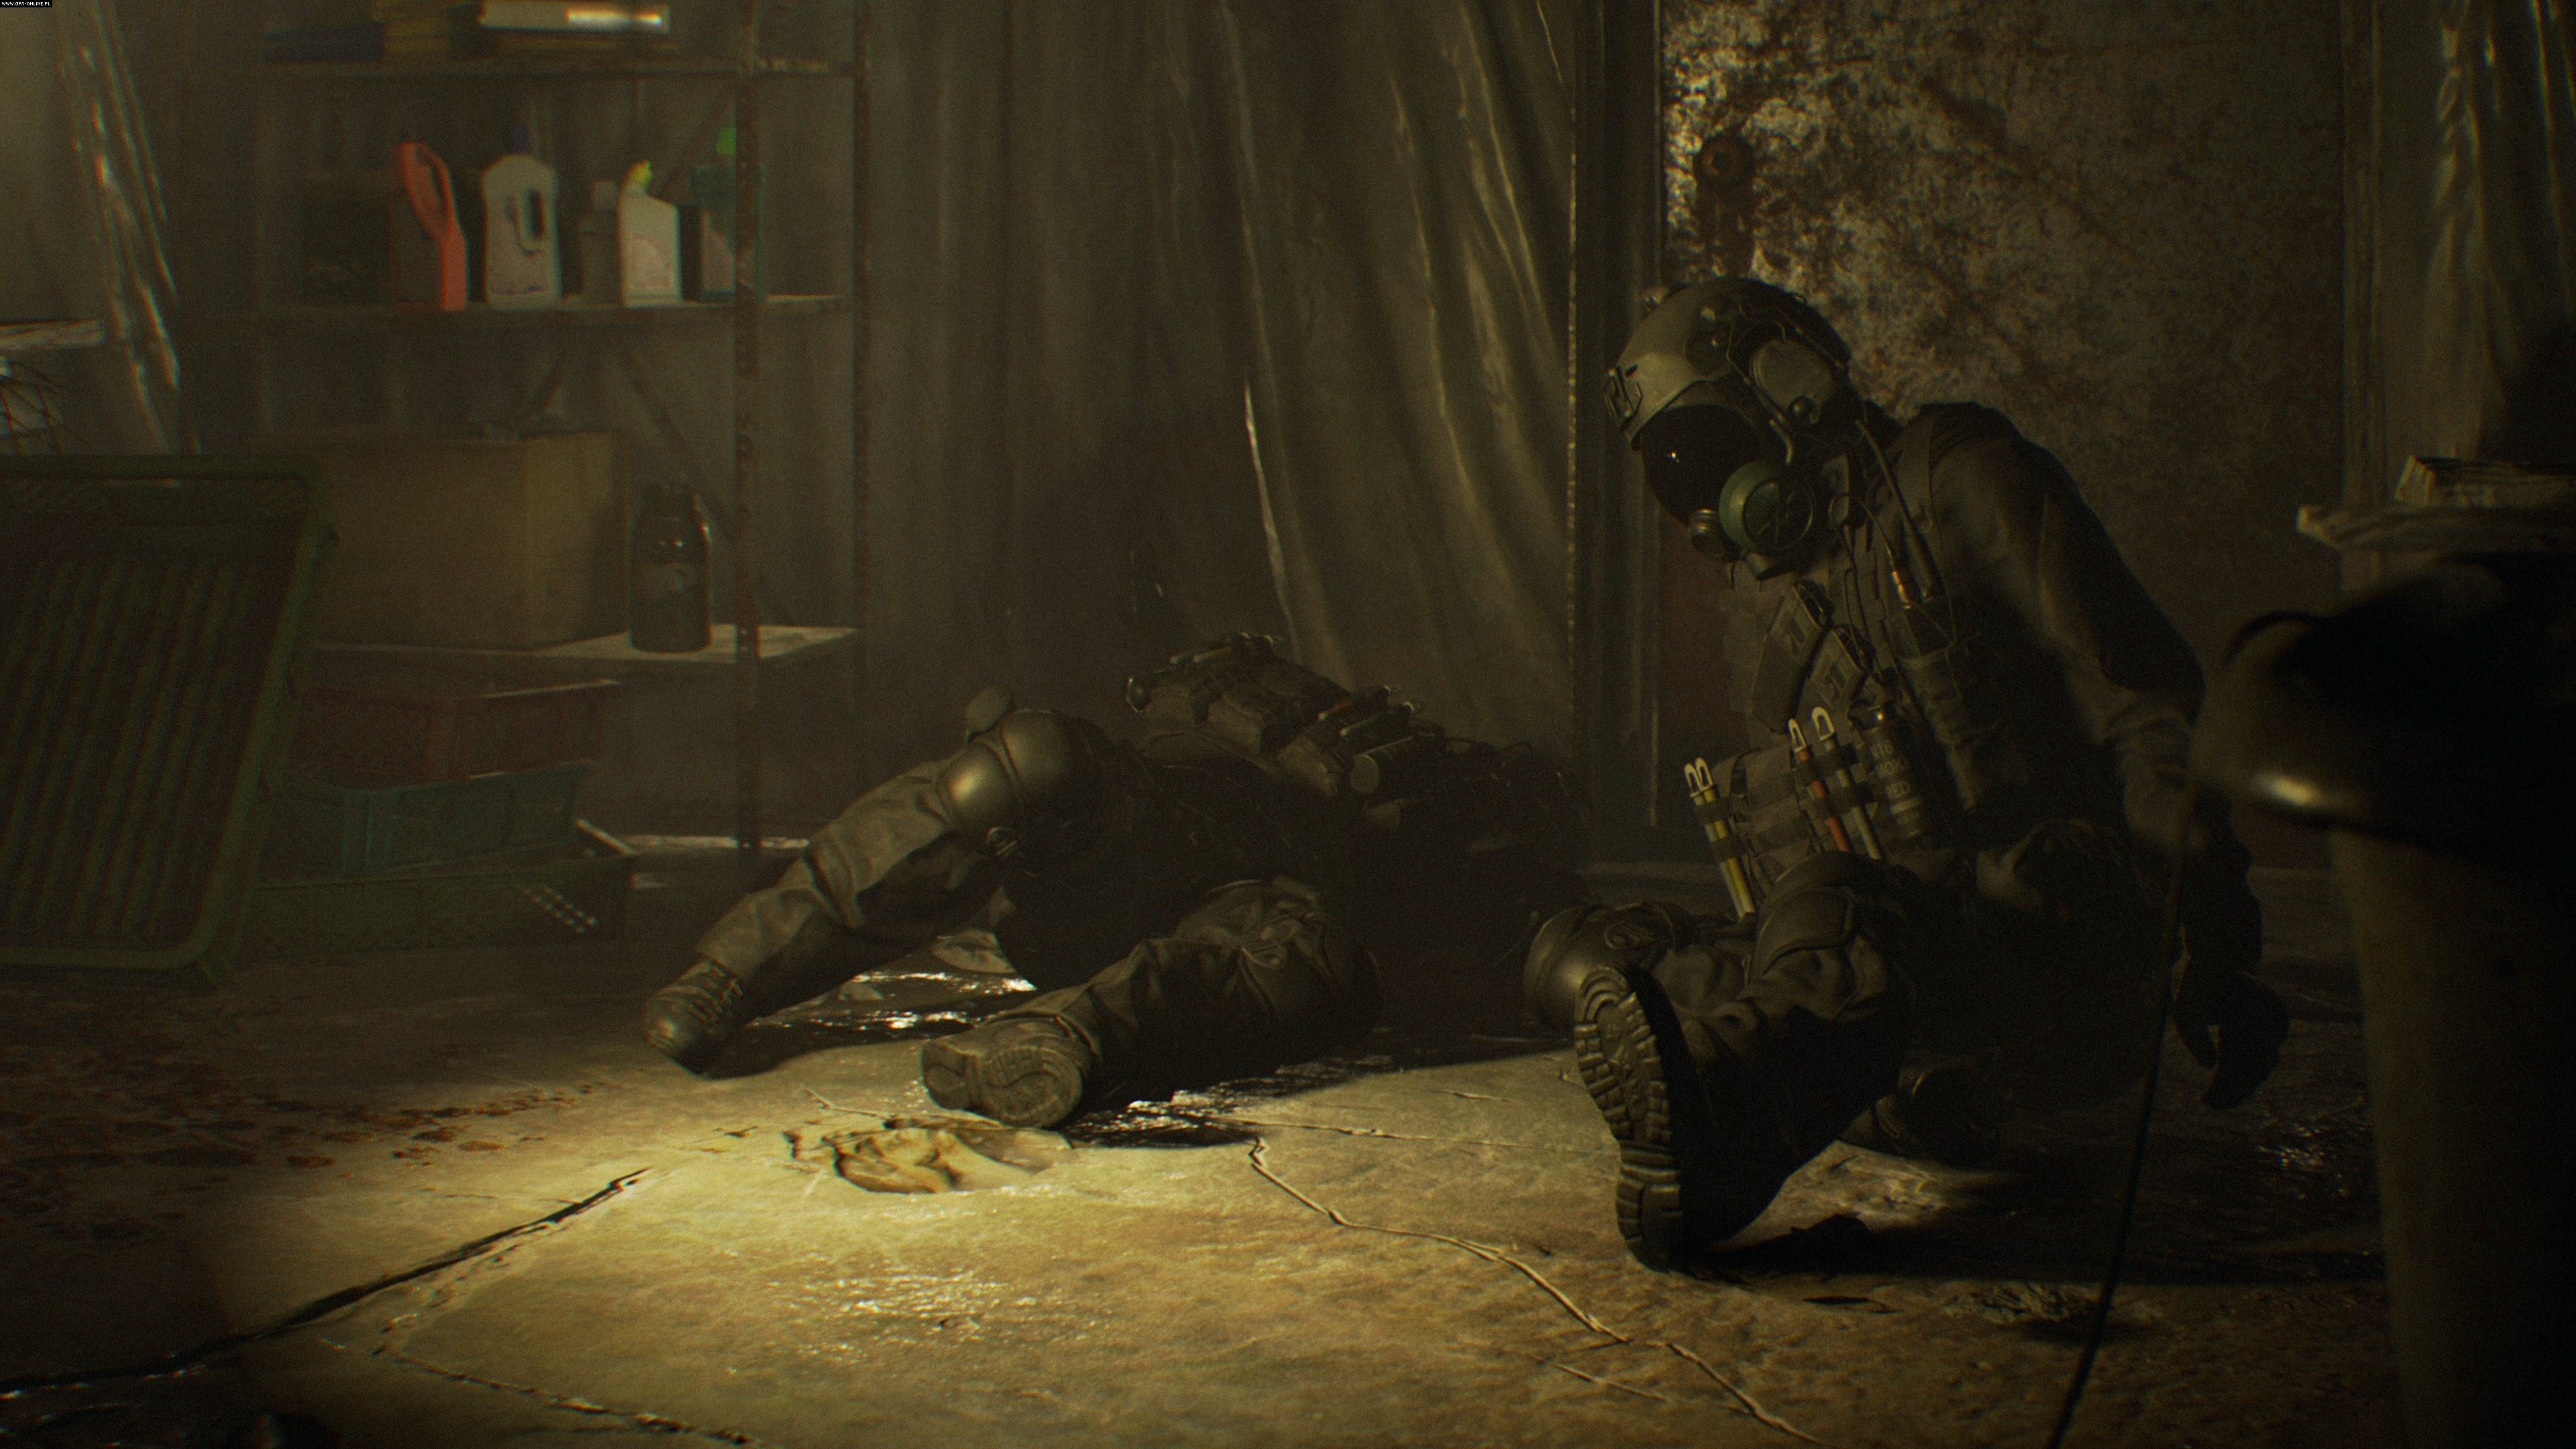 Resident Evil VII: Biohazard - Not a Hero PC, PS4, XONE Gry Screen 29/36, Capcom